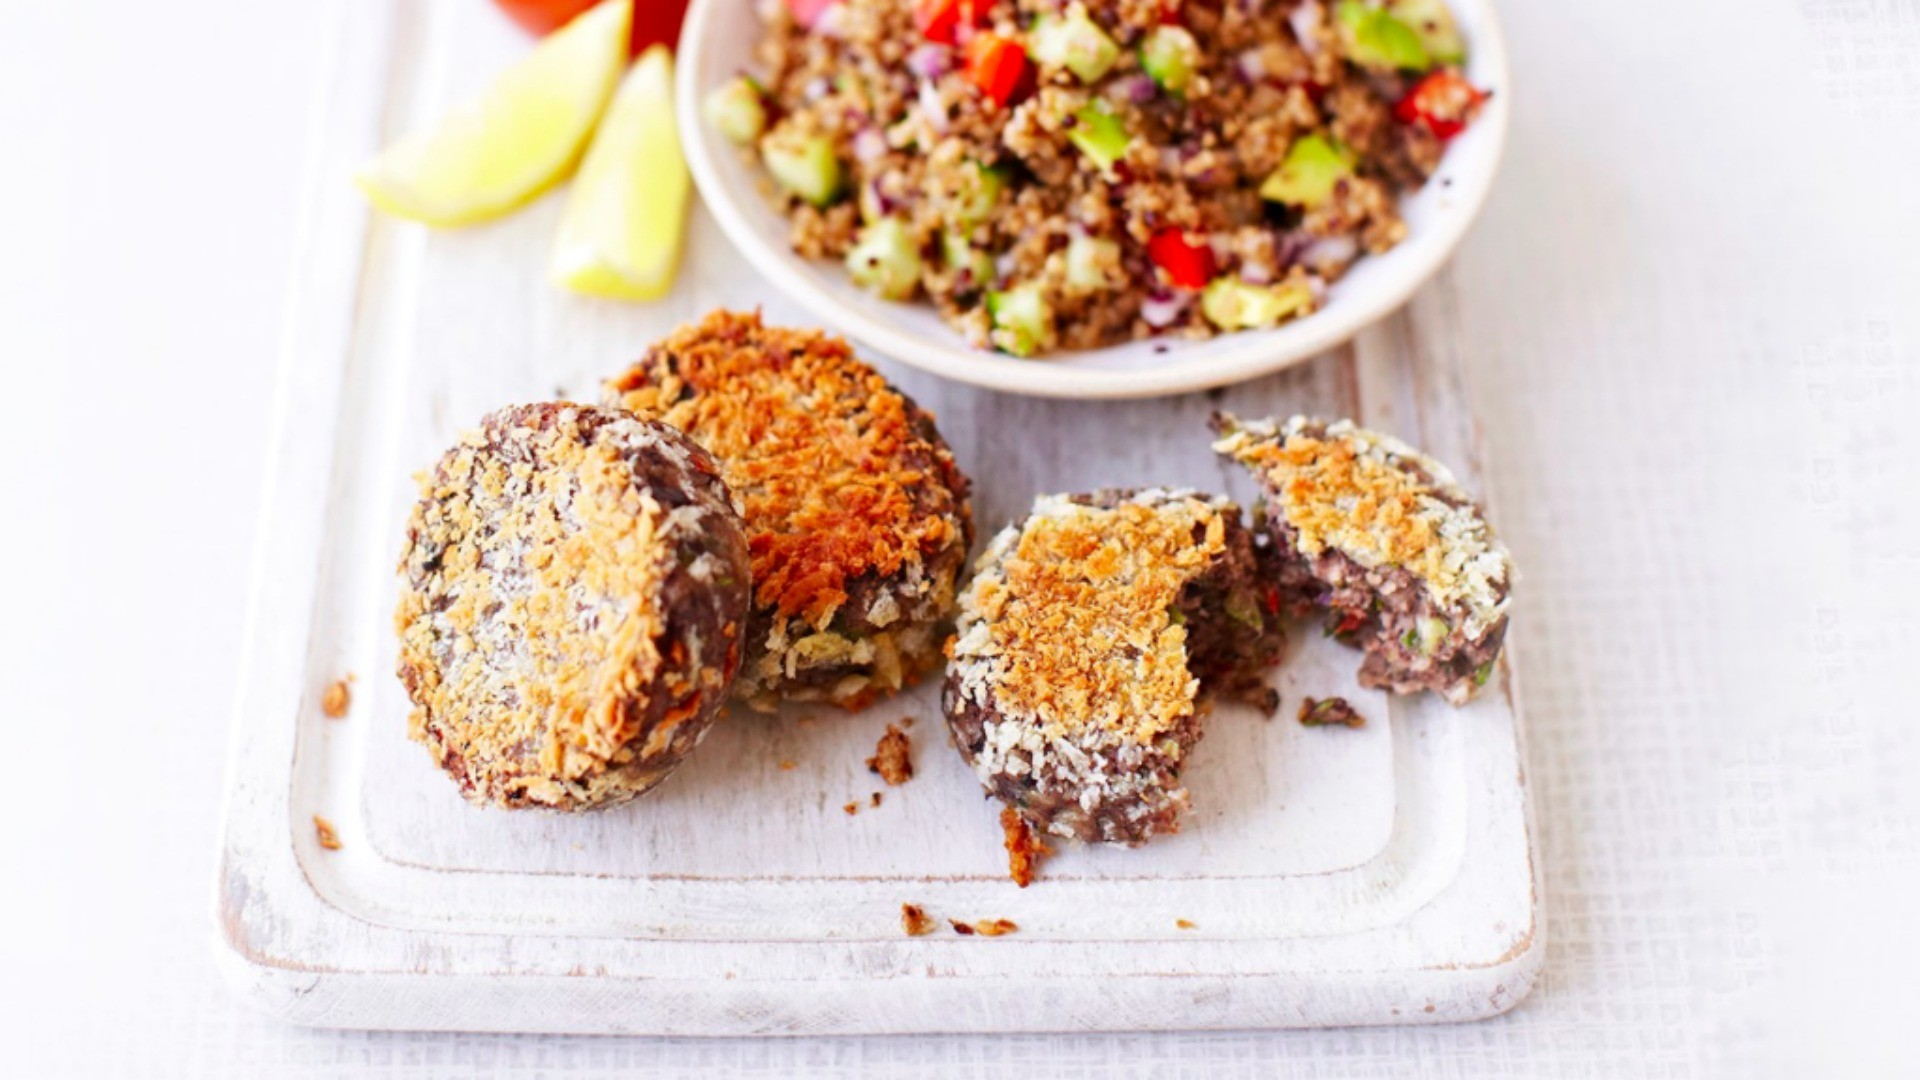 Whip up a batch of these black bean cakes in advance and have something ready to much on for those post-ride hunger pangs